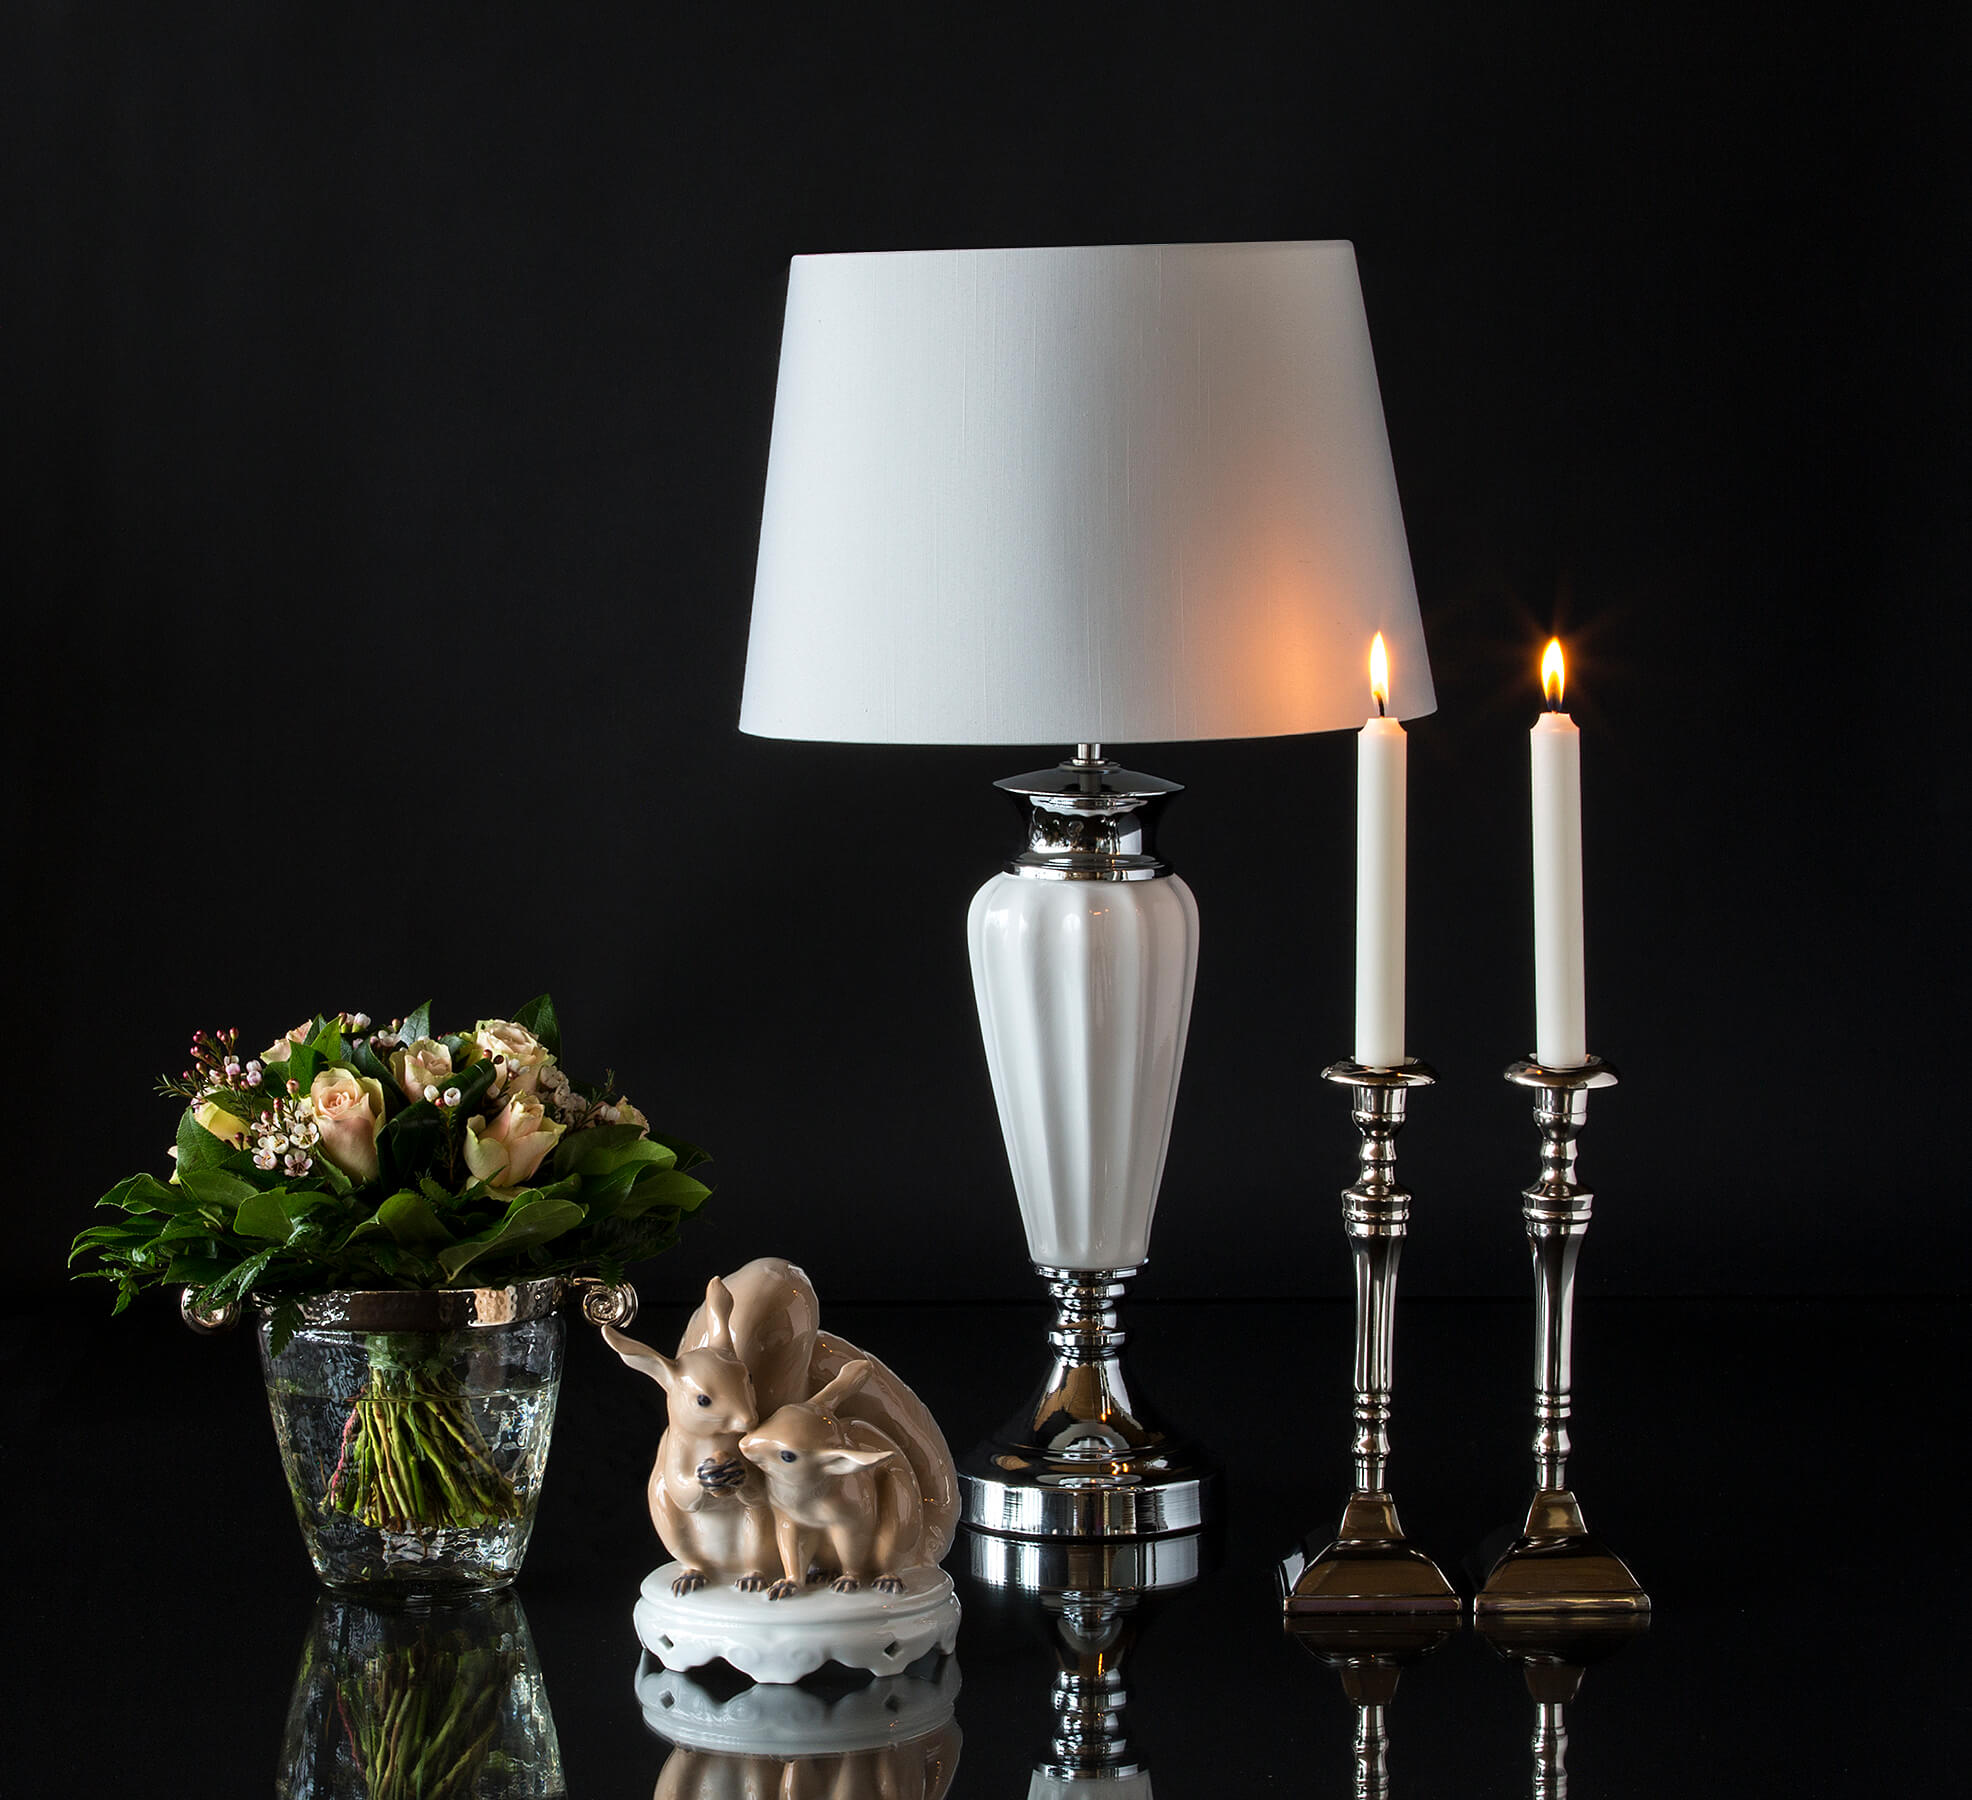 Figurine of squirrels with classic lamp and candlesticks